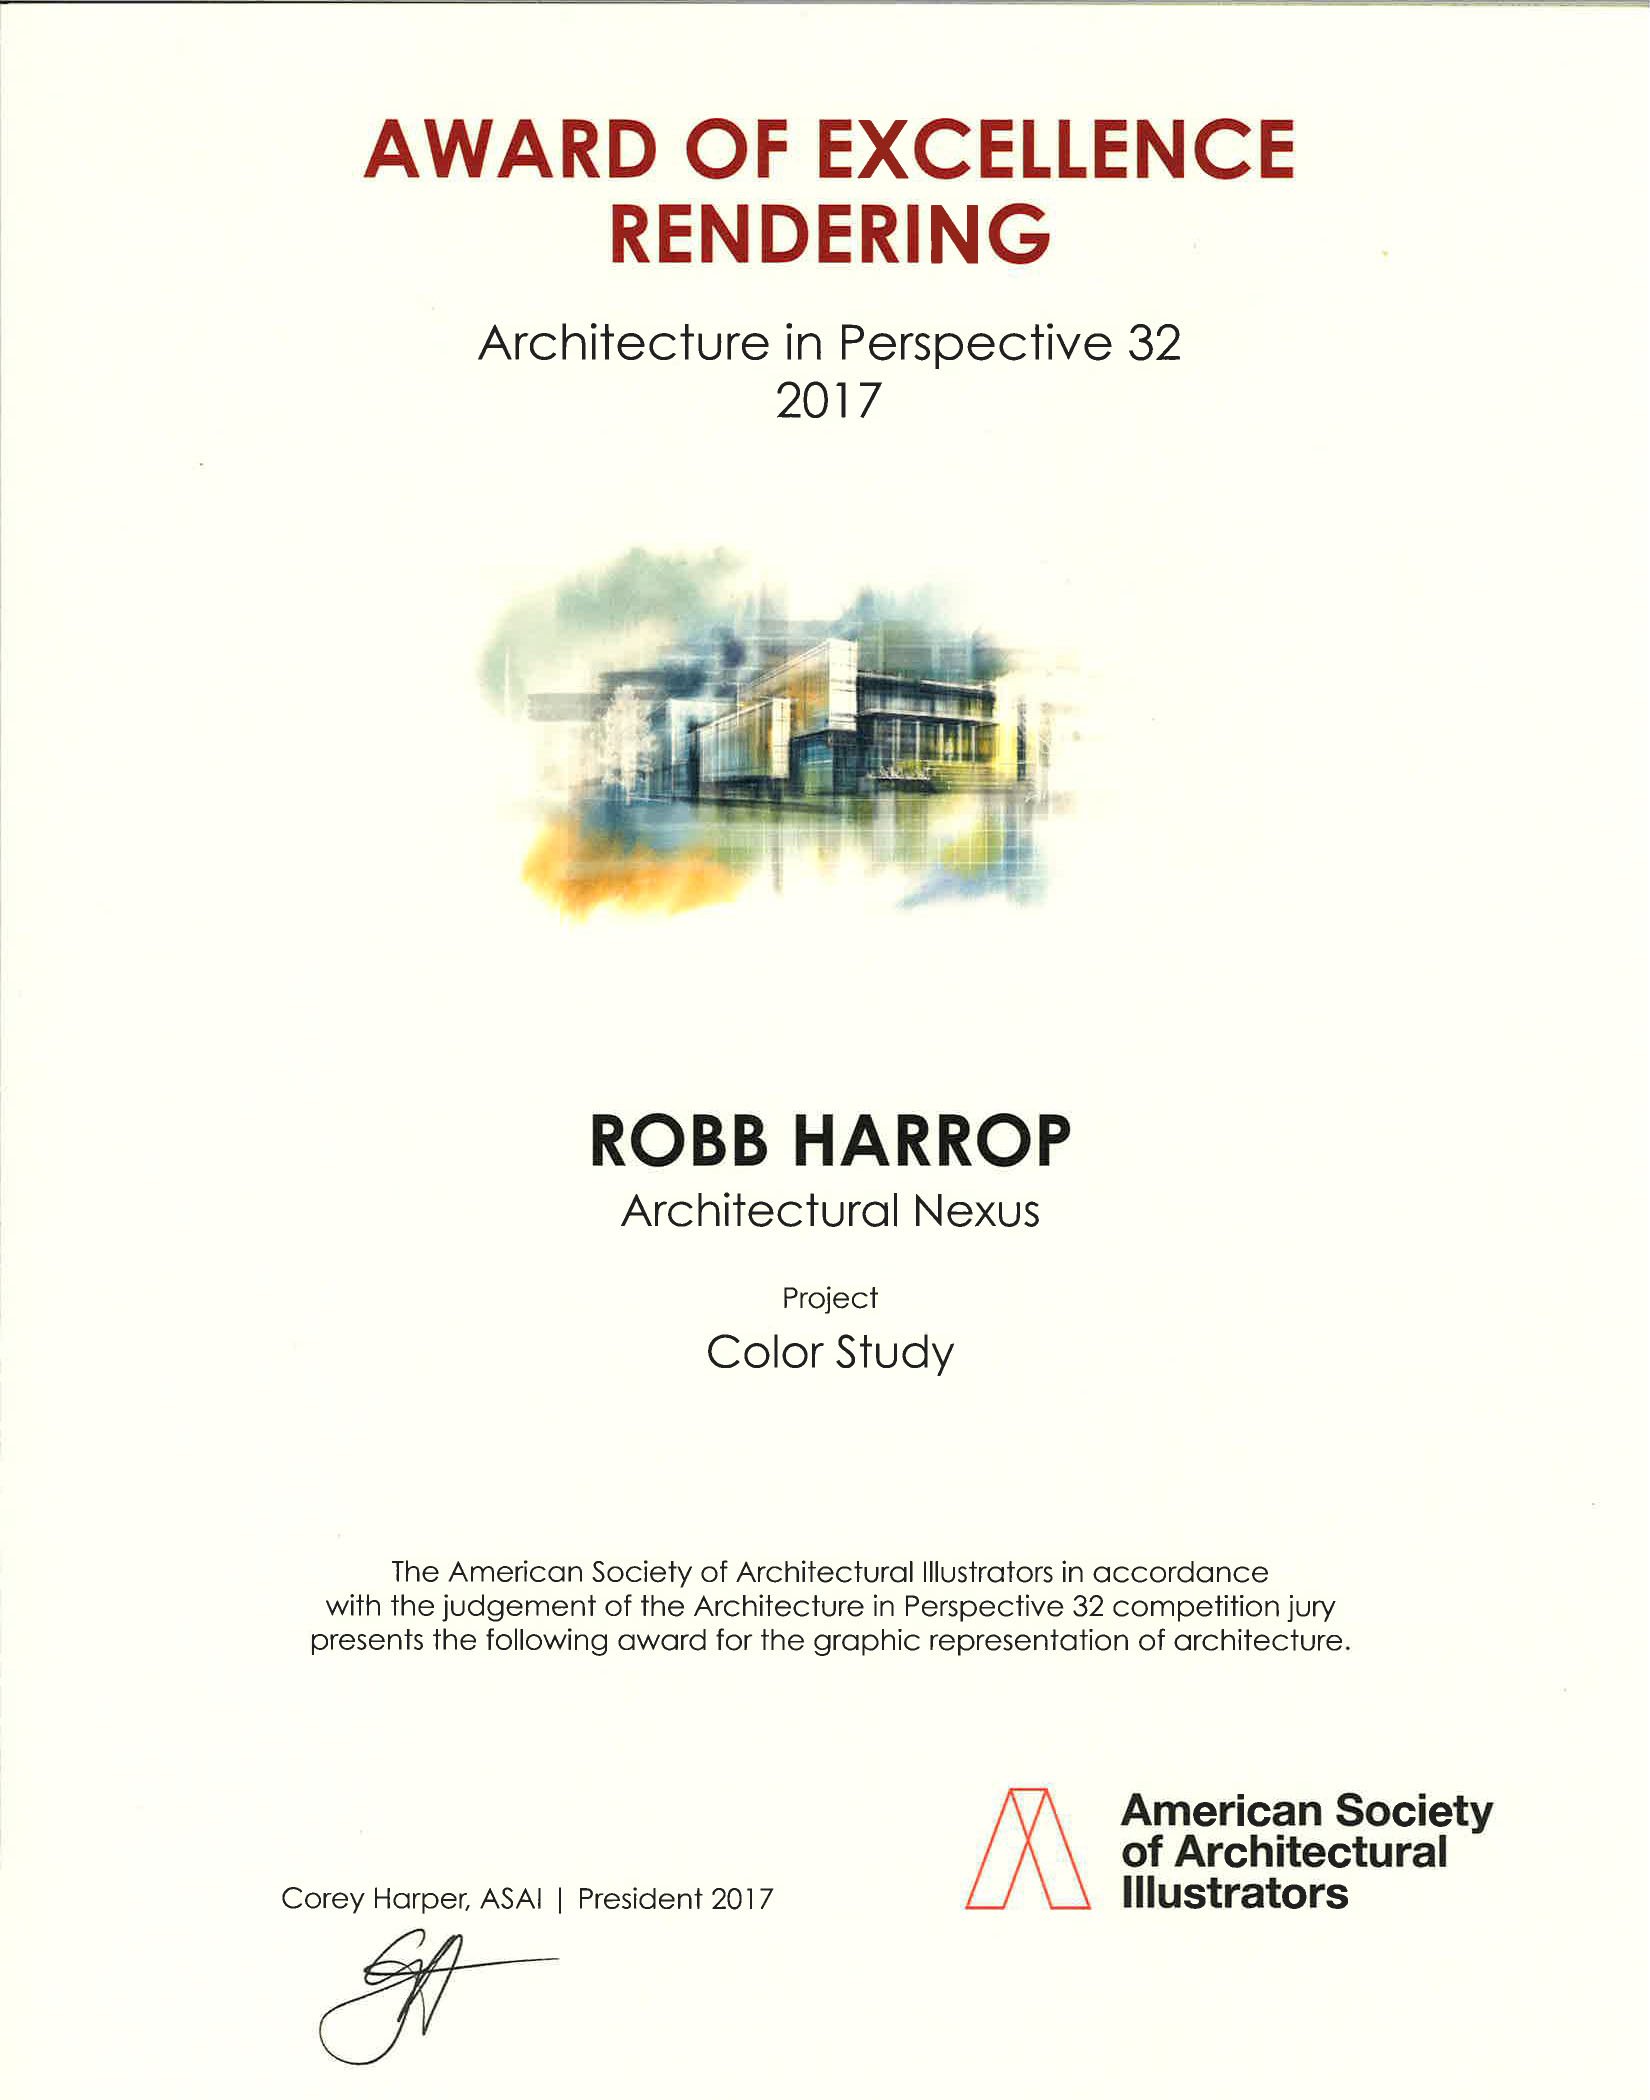 ASAI-Award-2017-Robb-Harrop02-1